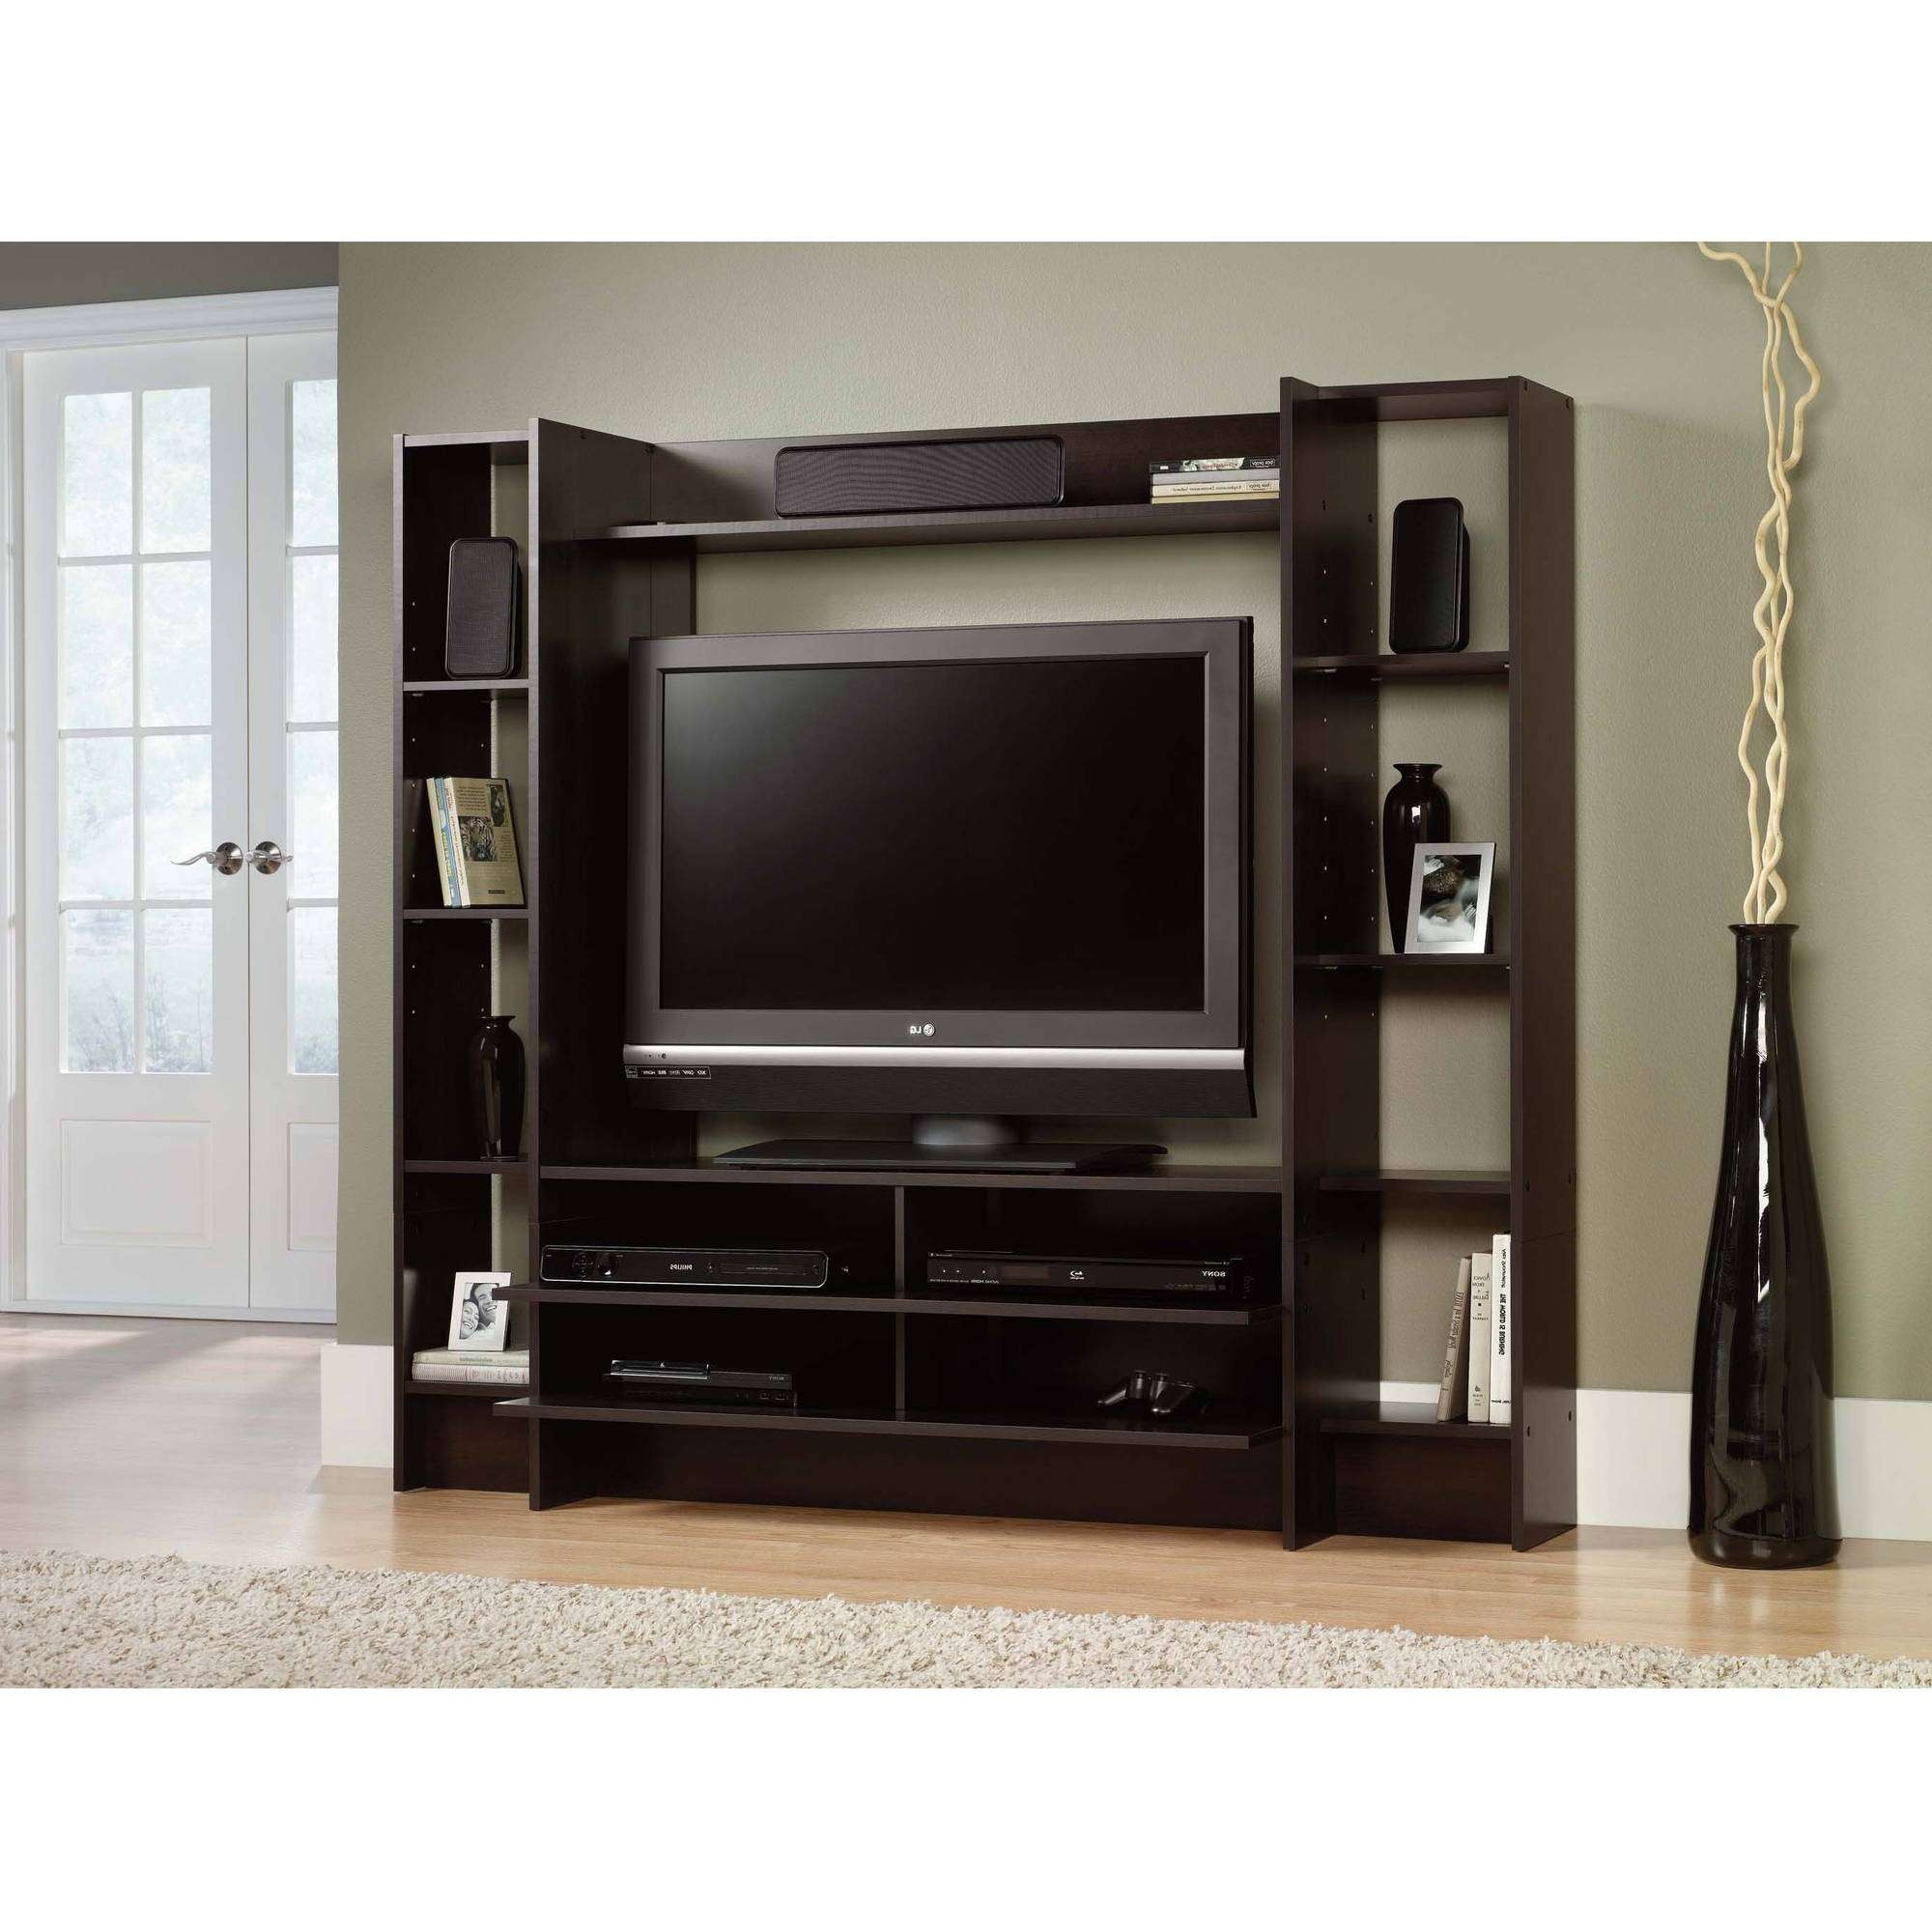 Tv Stands & Entertainment Centers – Walmart Inside Tv Stands With Storage Baskets (View 15 of 15)